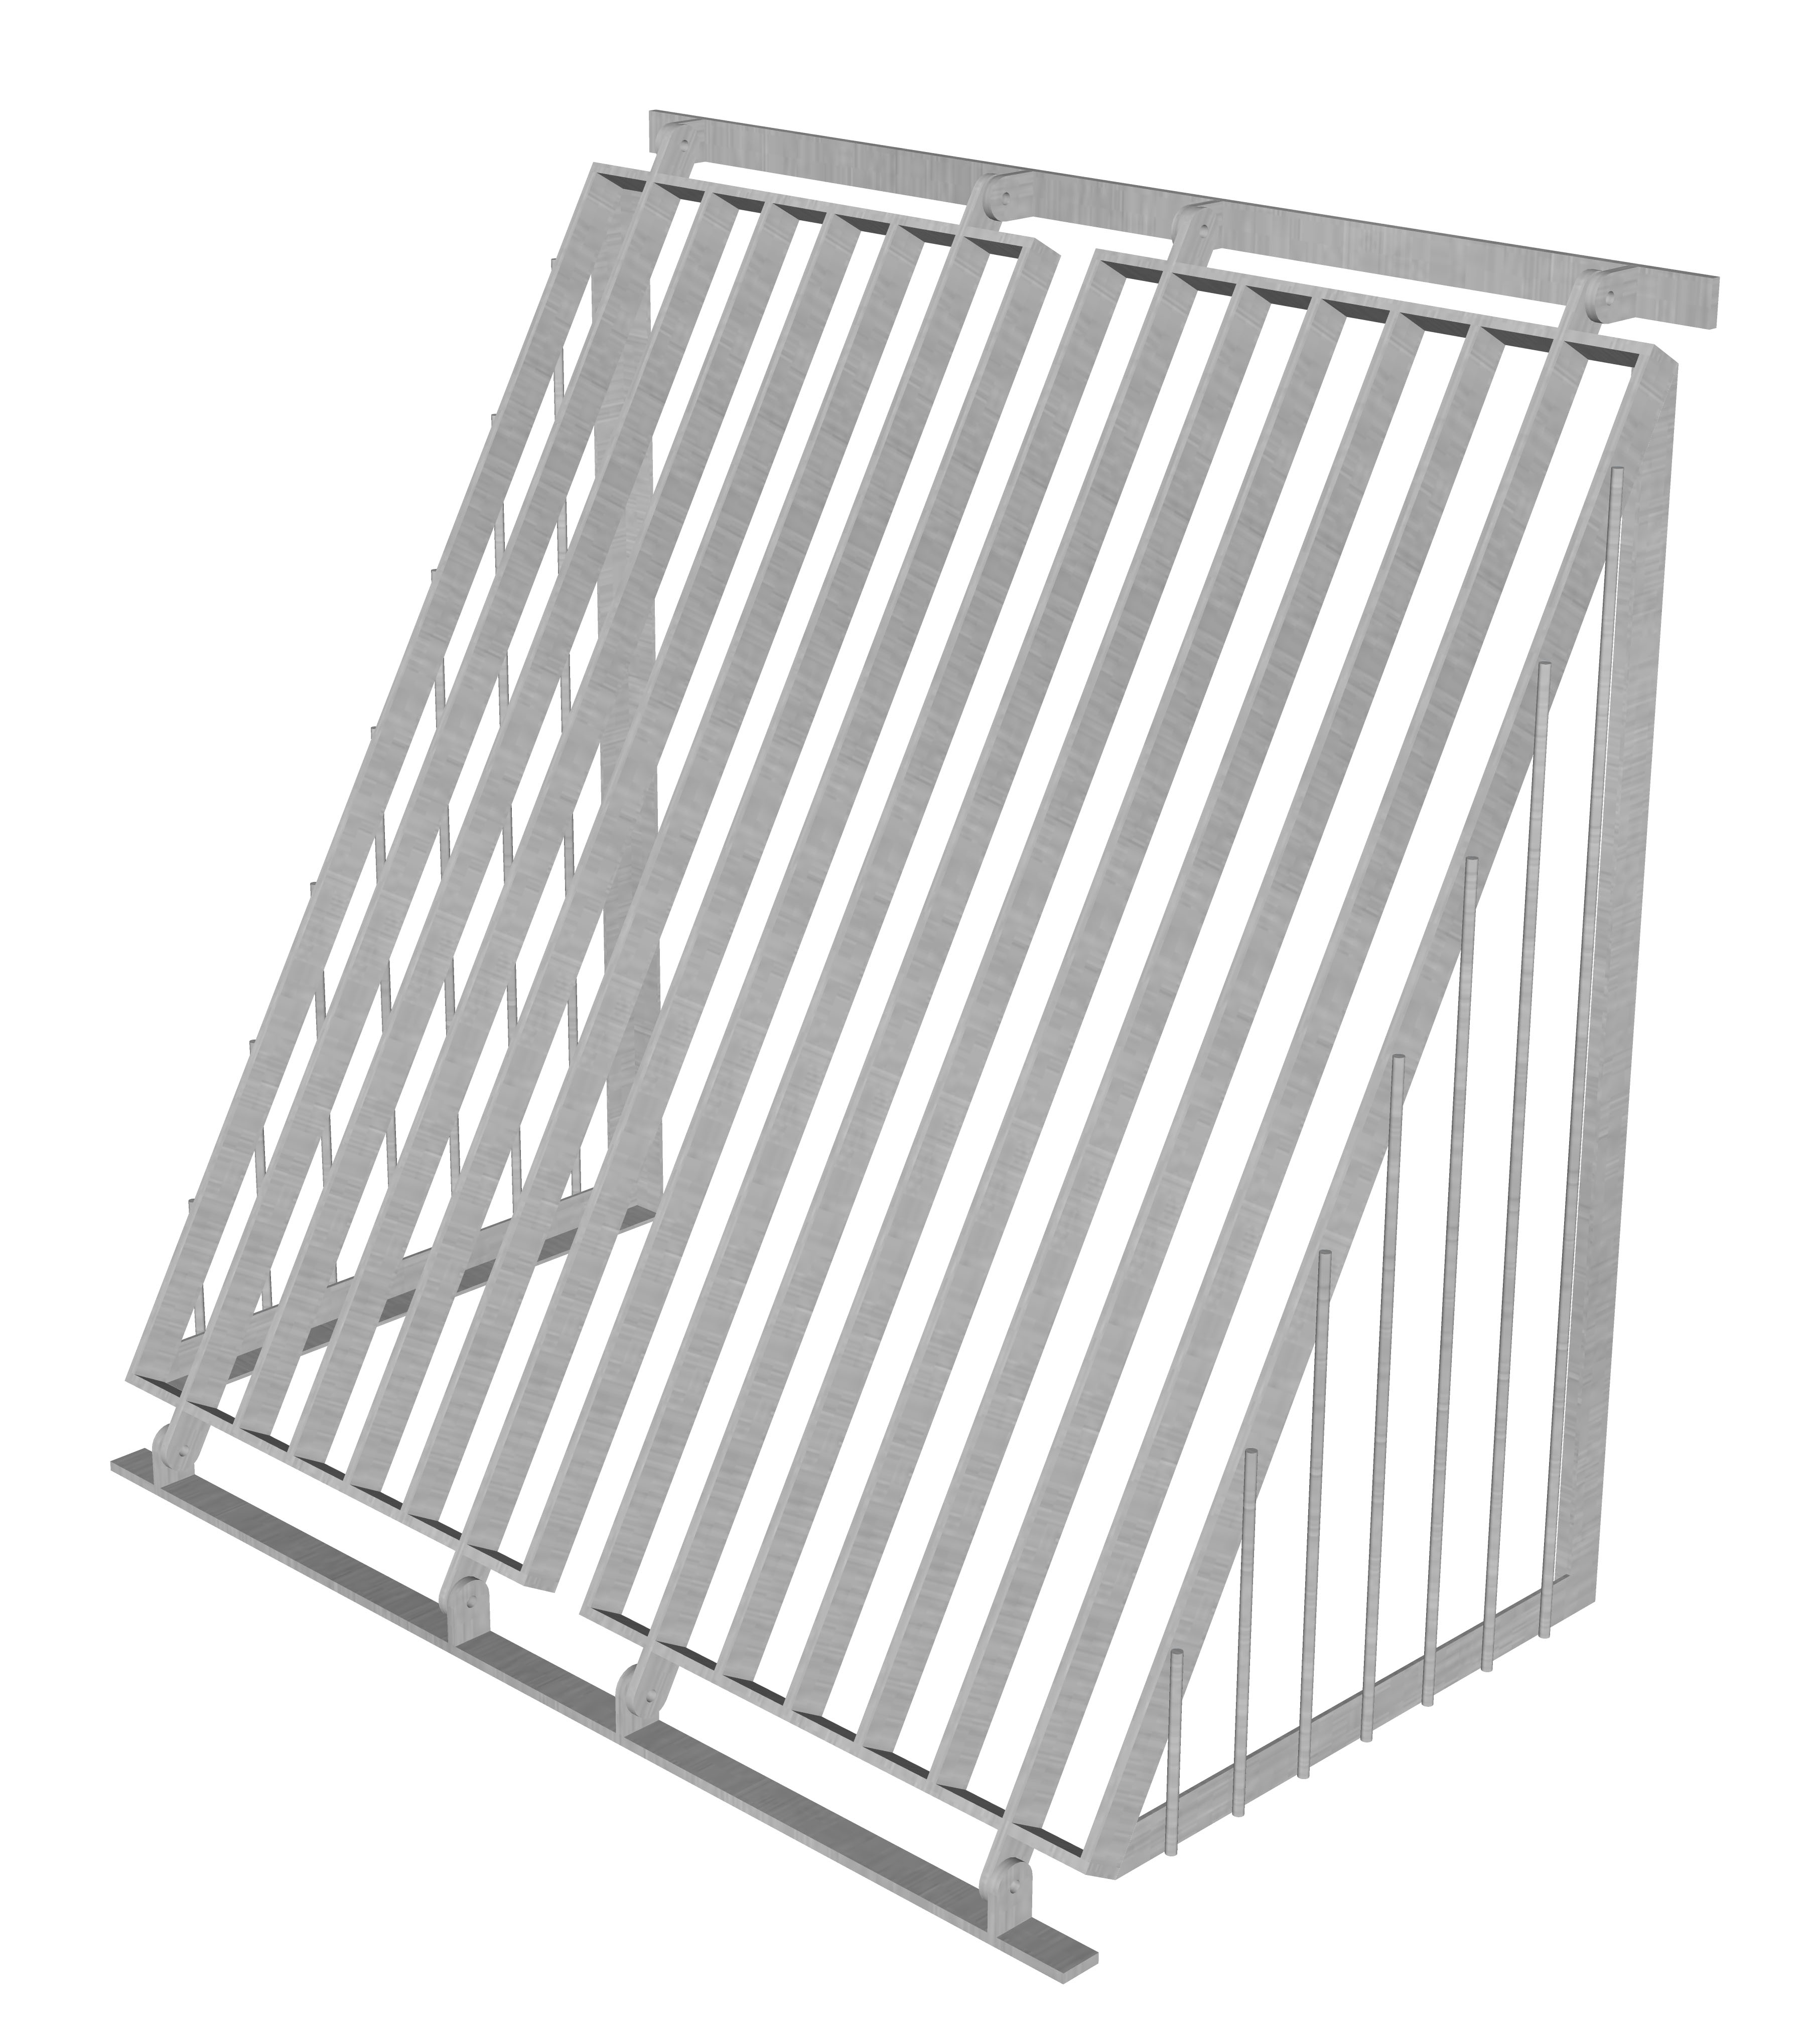 Sloped Trash Screen with Sides